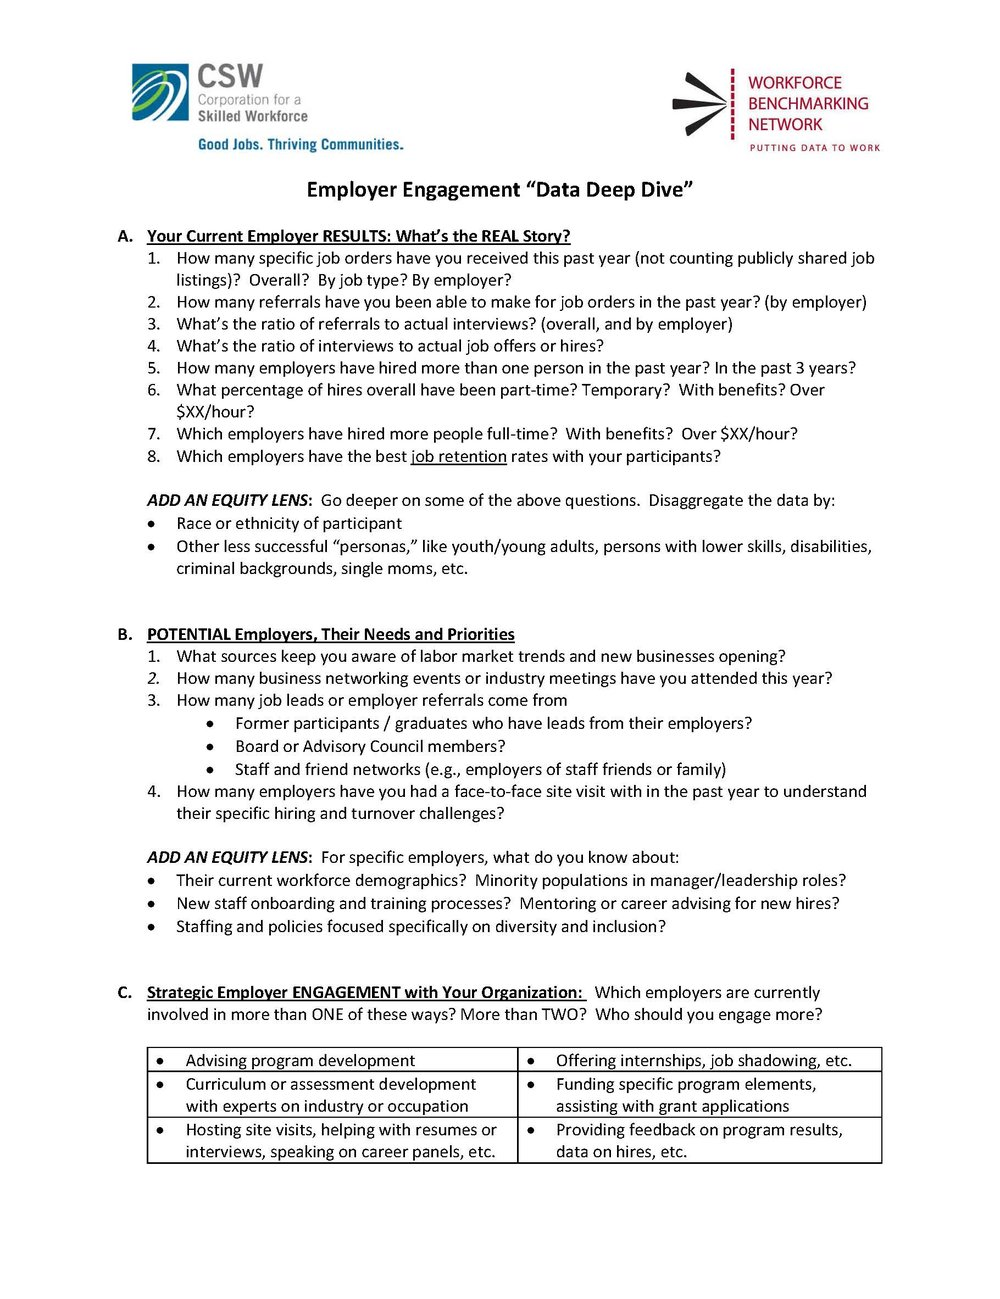 Employer Engagement Data & Action Planning